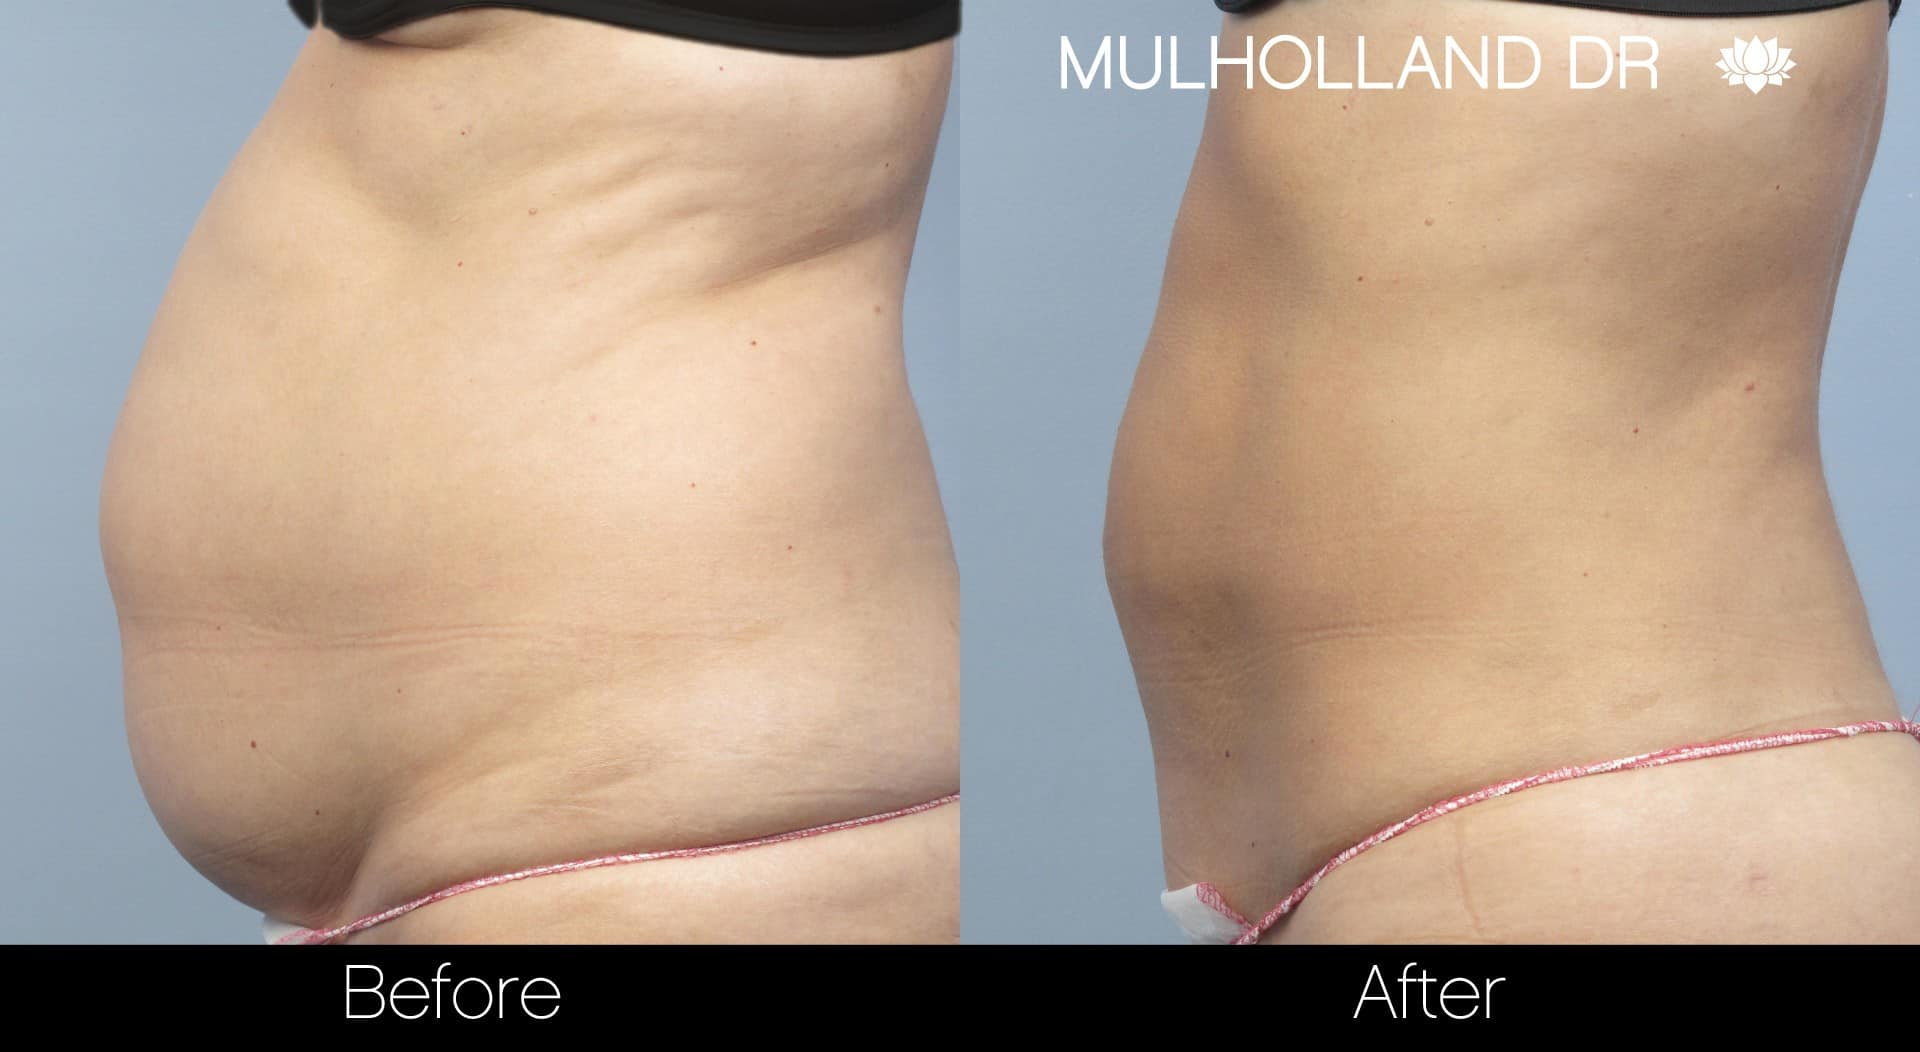 BodyTite Liposuction - Before and After Gallery – Photo 5